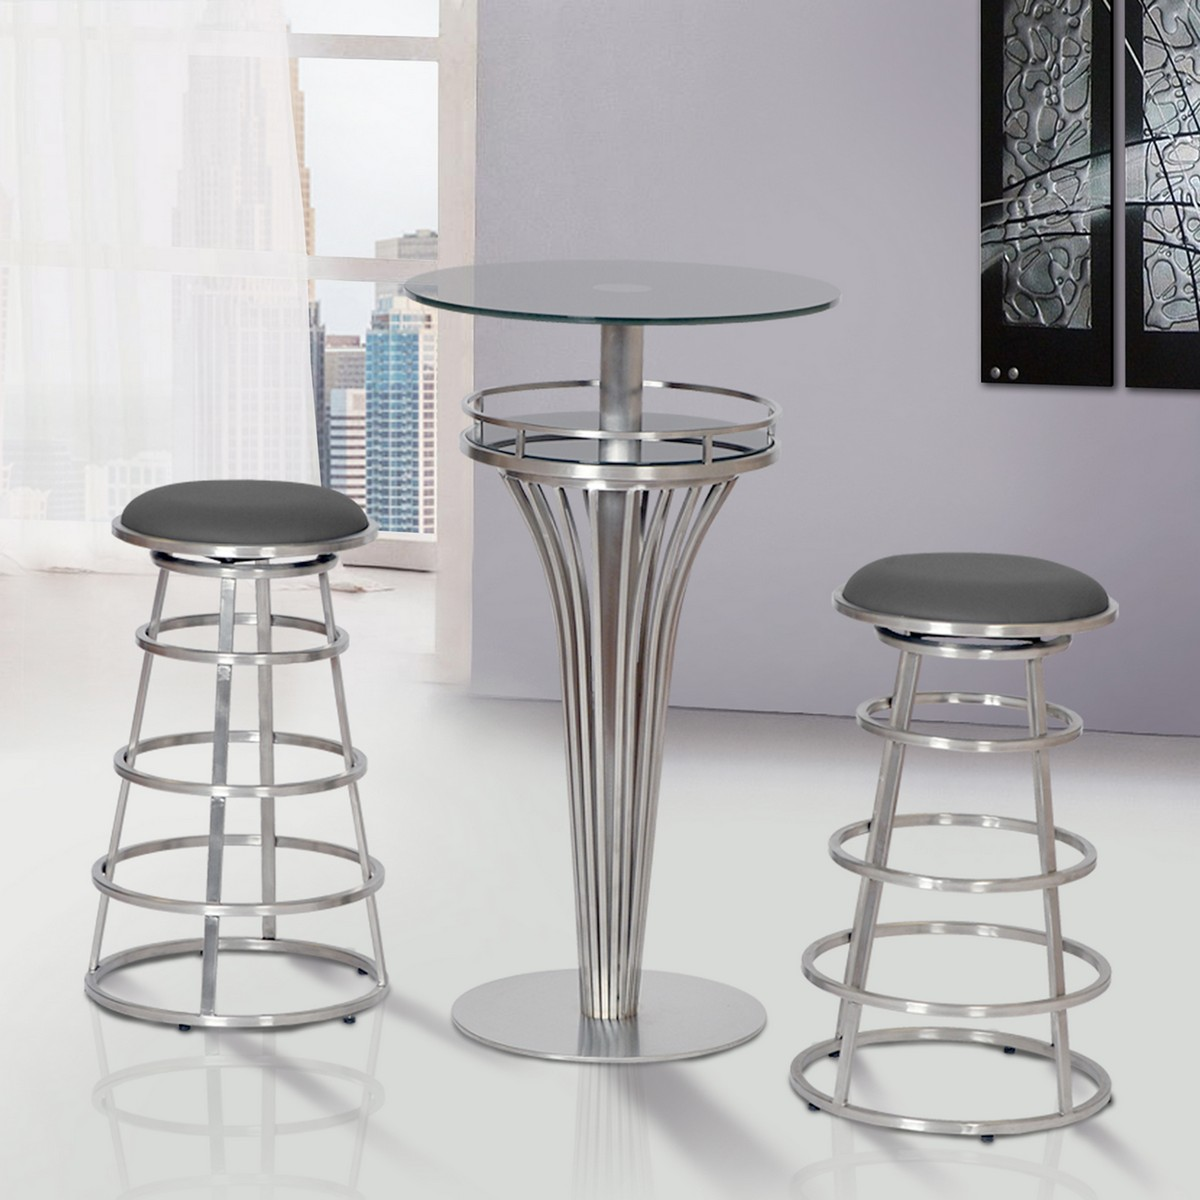 Armen Living Ringo 30-inch Backless Brushed Stainless Steel Barstool in Gray Leatherette